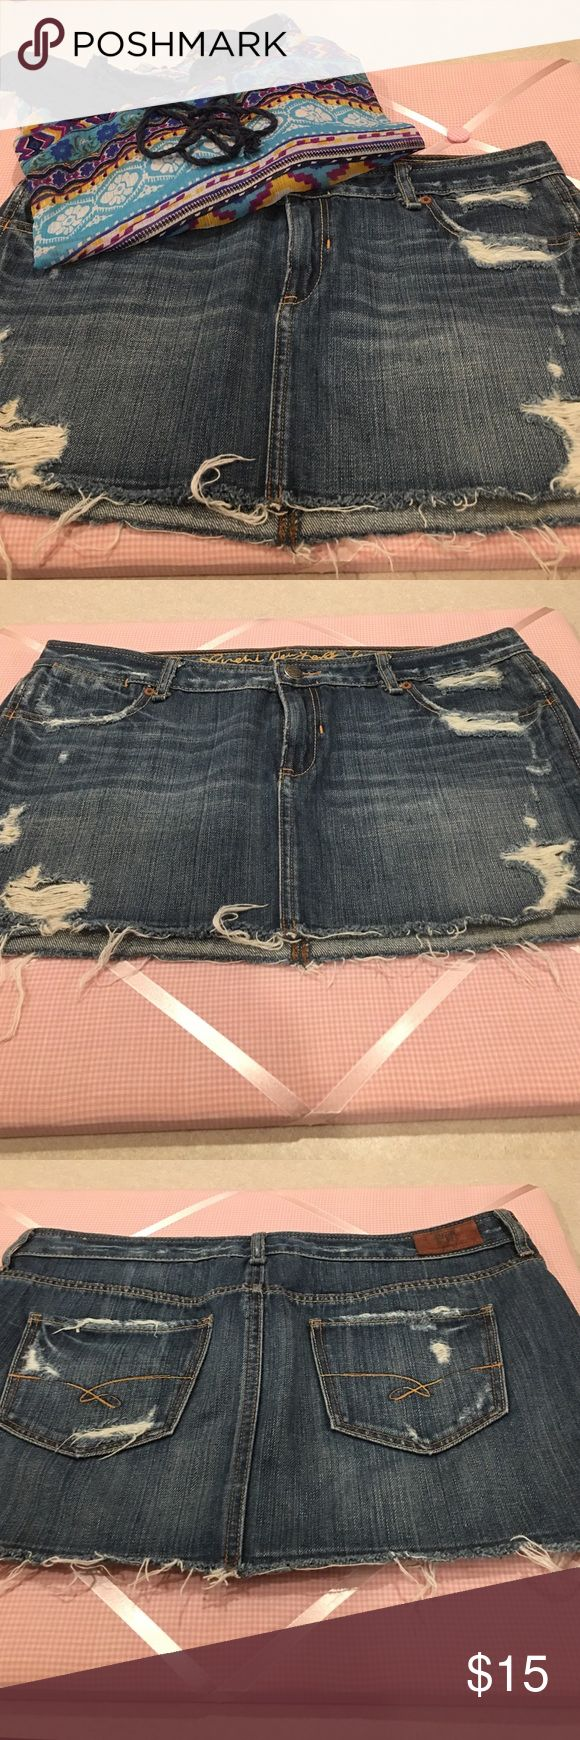 💠RUEHL distressed Jean skirt💠 Very fun and flirty distressed Jean skirt. In excellent condition and is approximately 11 inches long and approximately 16 inches along the waistline. Only worn maybe 2 times. Let me know if you have any questions. Thanks for looking. Ruehl No. 925 Skirts